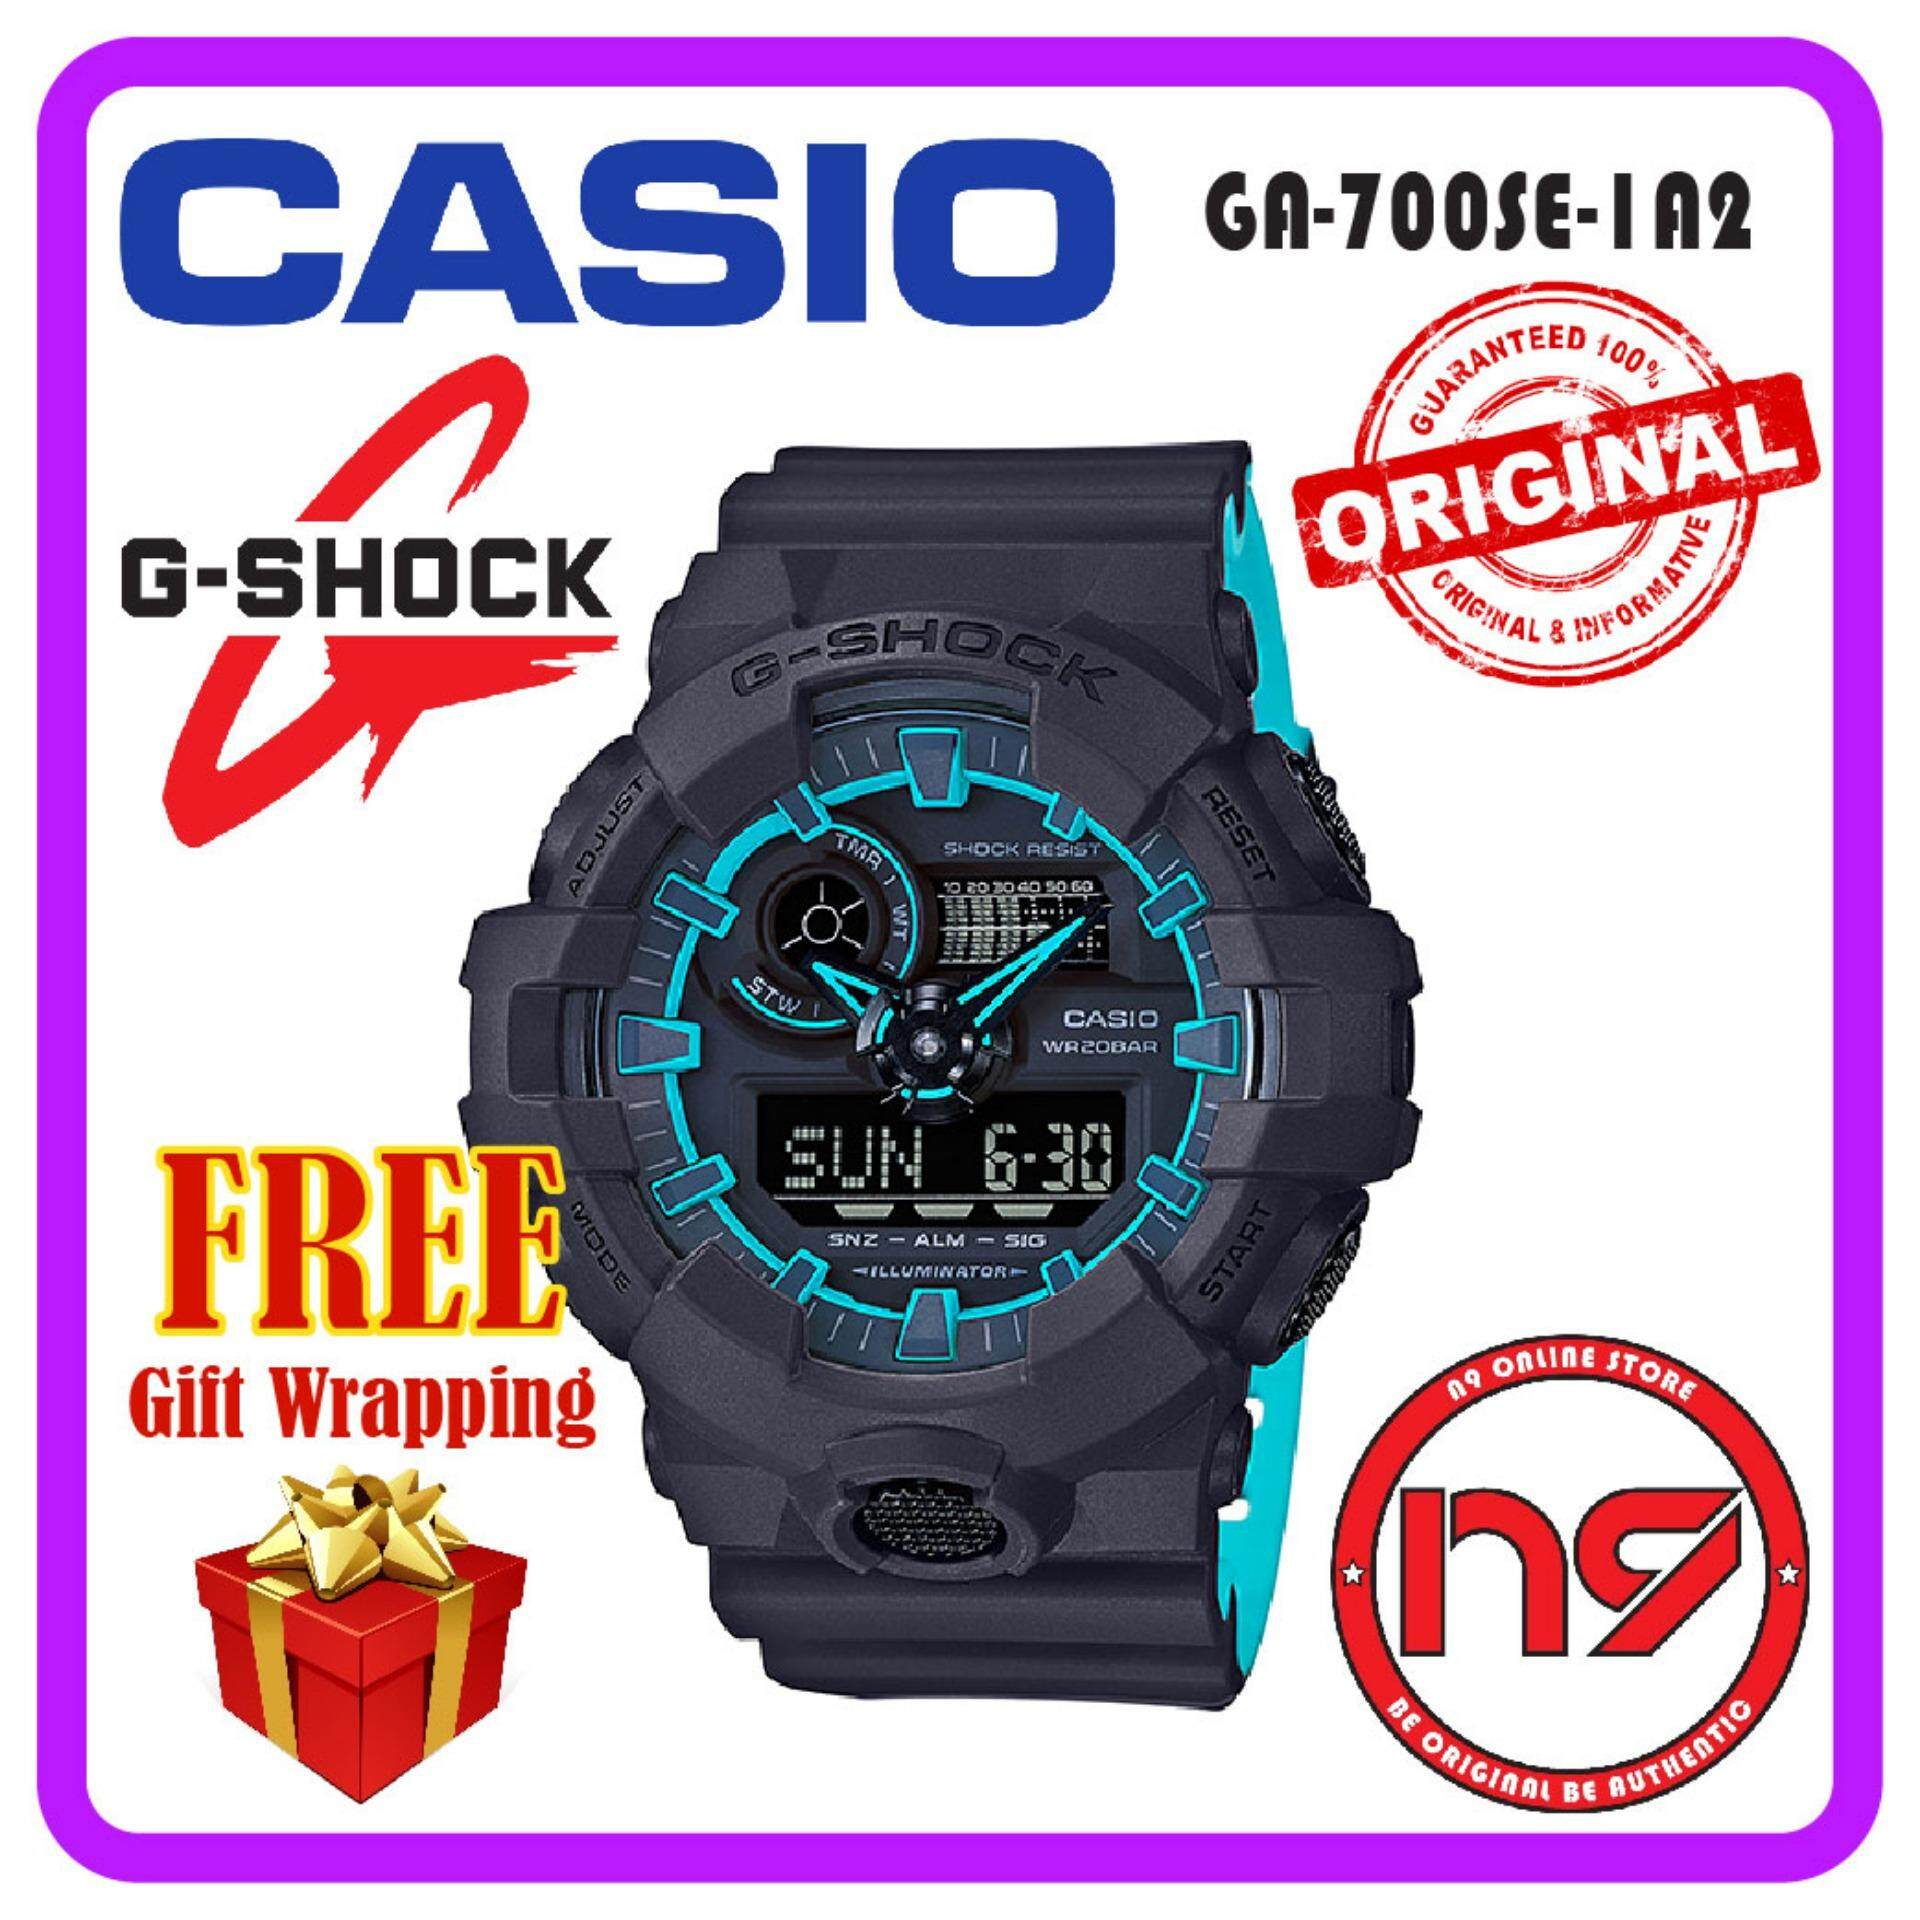 Casio G-Shock GA-700SE-1A2 Analog Digital Neon Dual Color Sports Watch